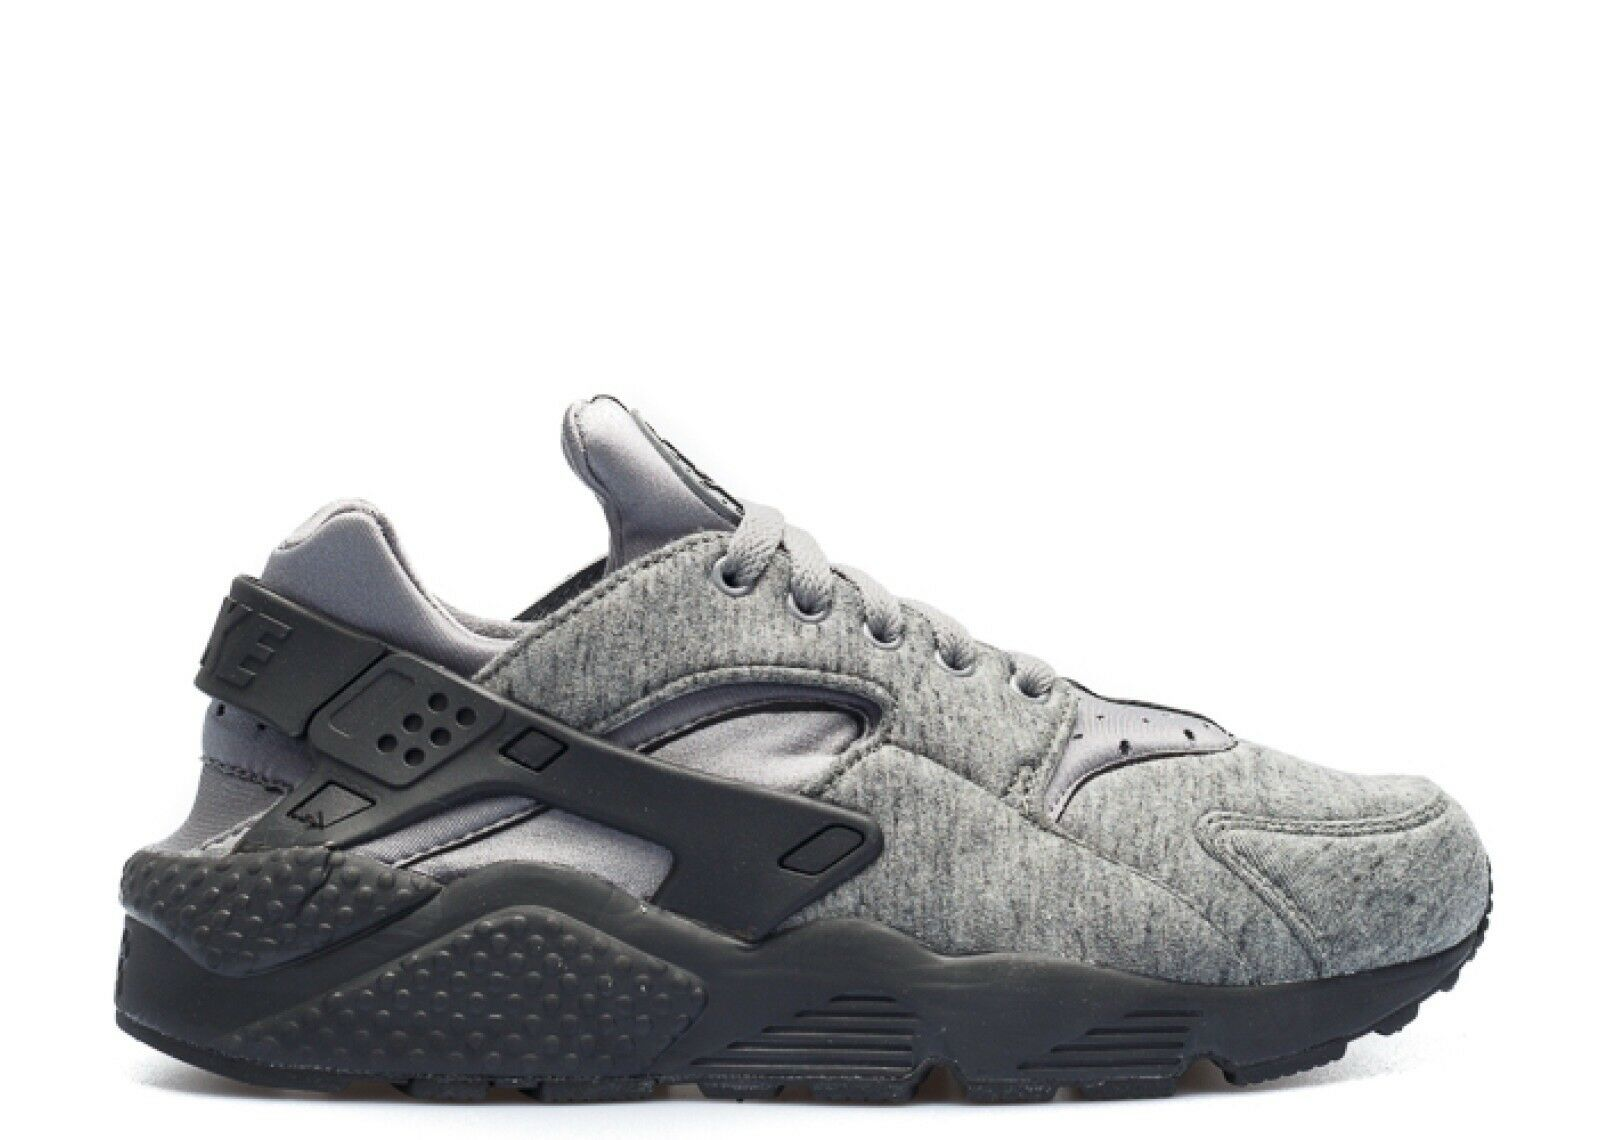 save off 3137f ca9d4 Nike Air Huarache Huarache Huarache Run TP Tech Pack Cool Grey 749659-002  US Mens